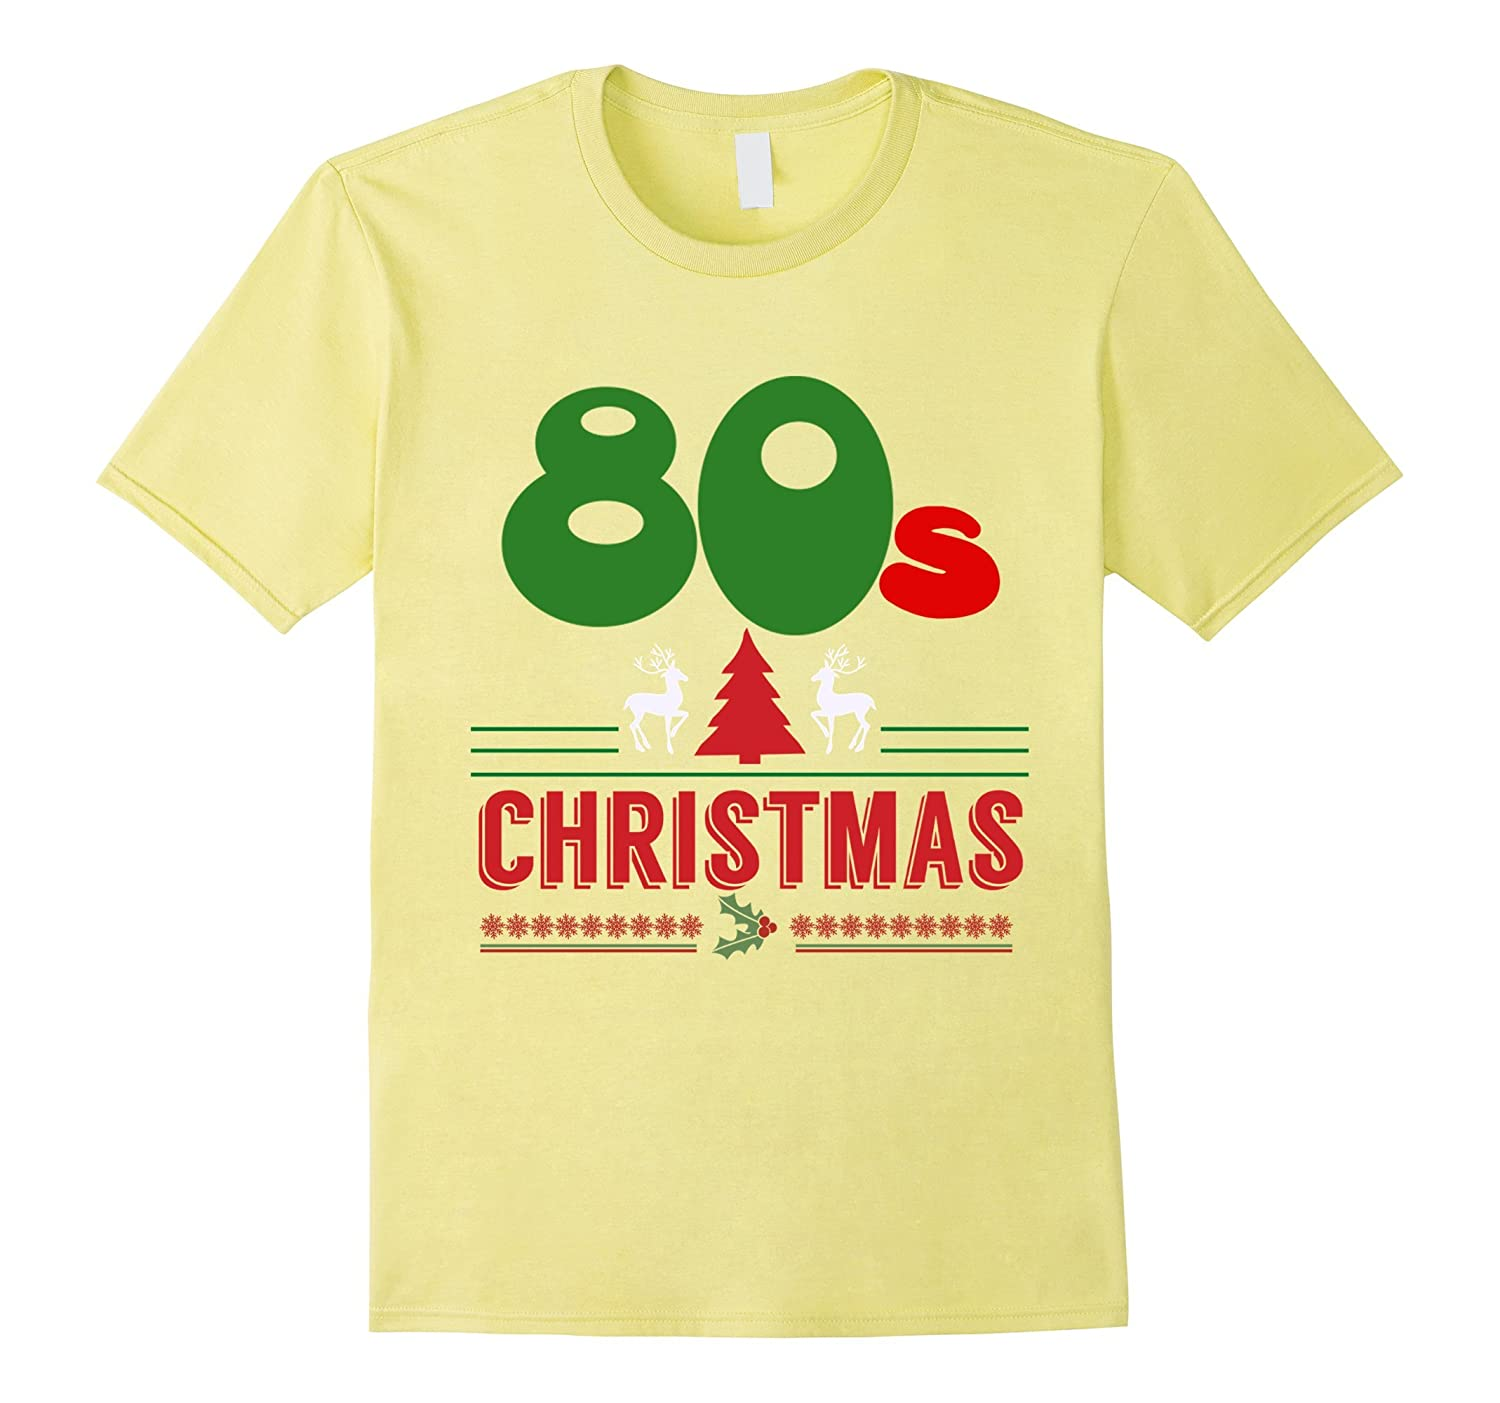 Mens COOL: Retro Ugly 80s Christmas Party Shirt Outfit ...